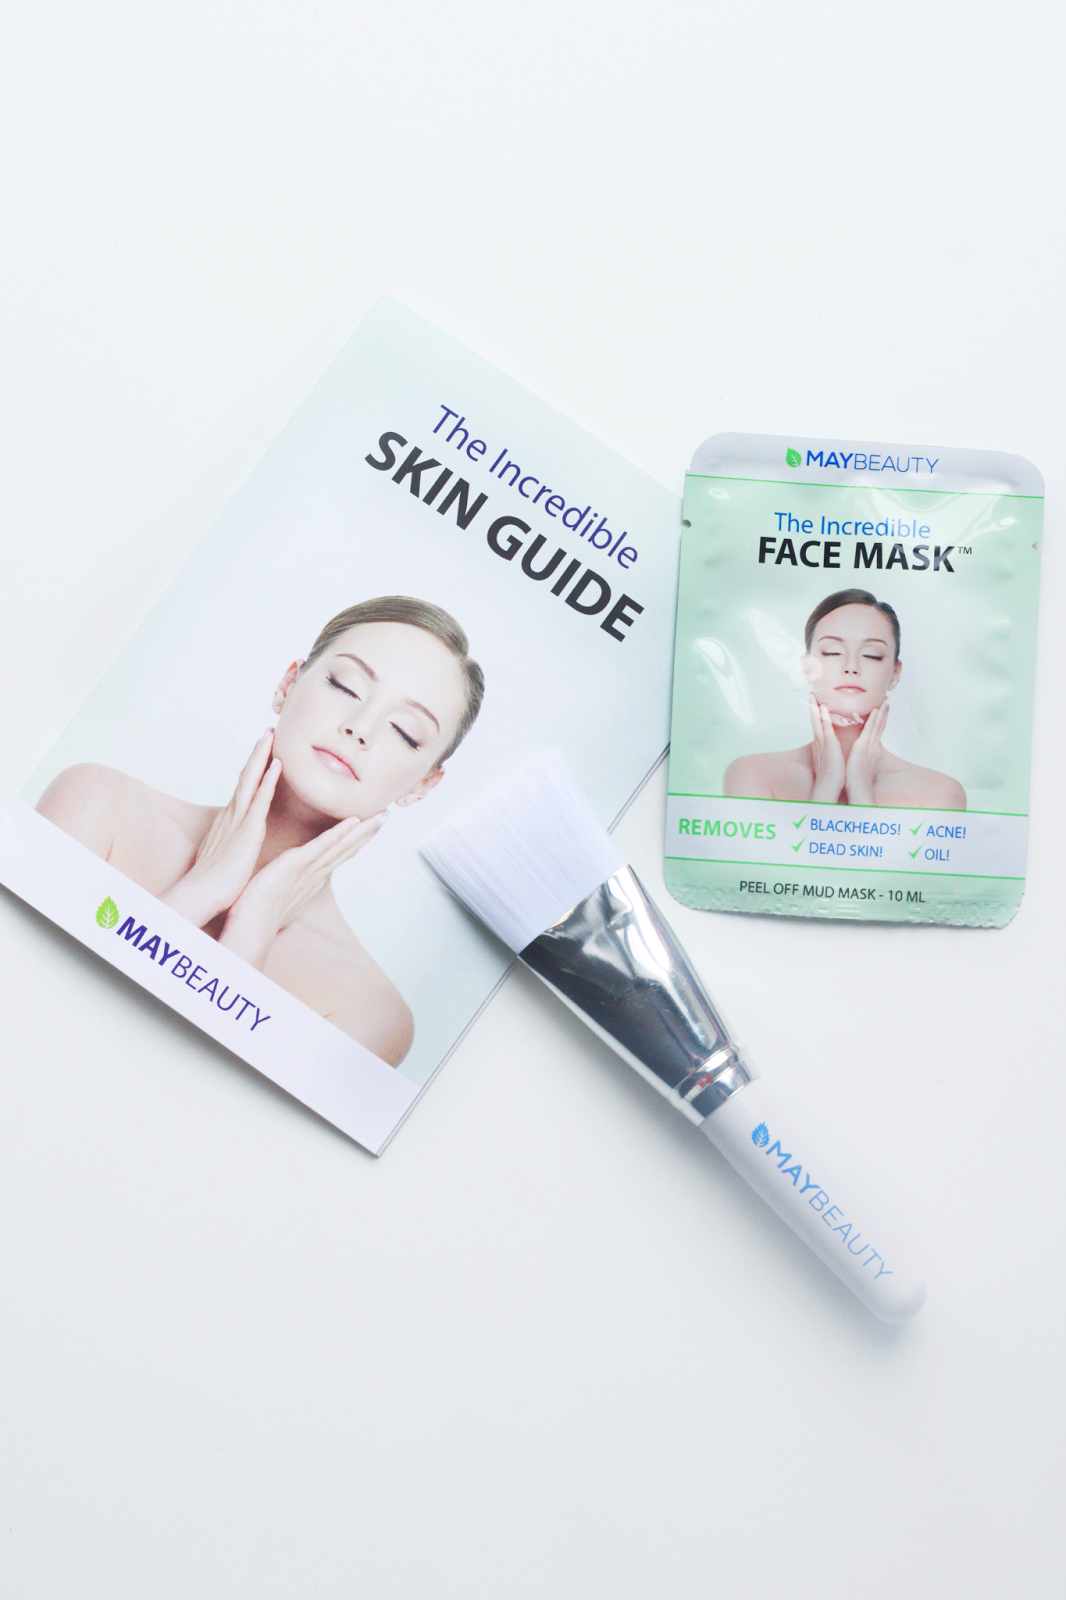 a photo of The Incredible Face Mask by May Beauty